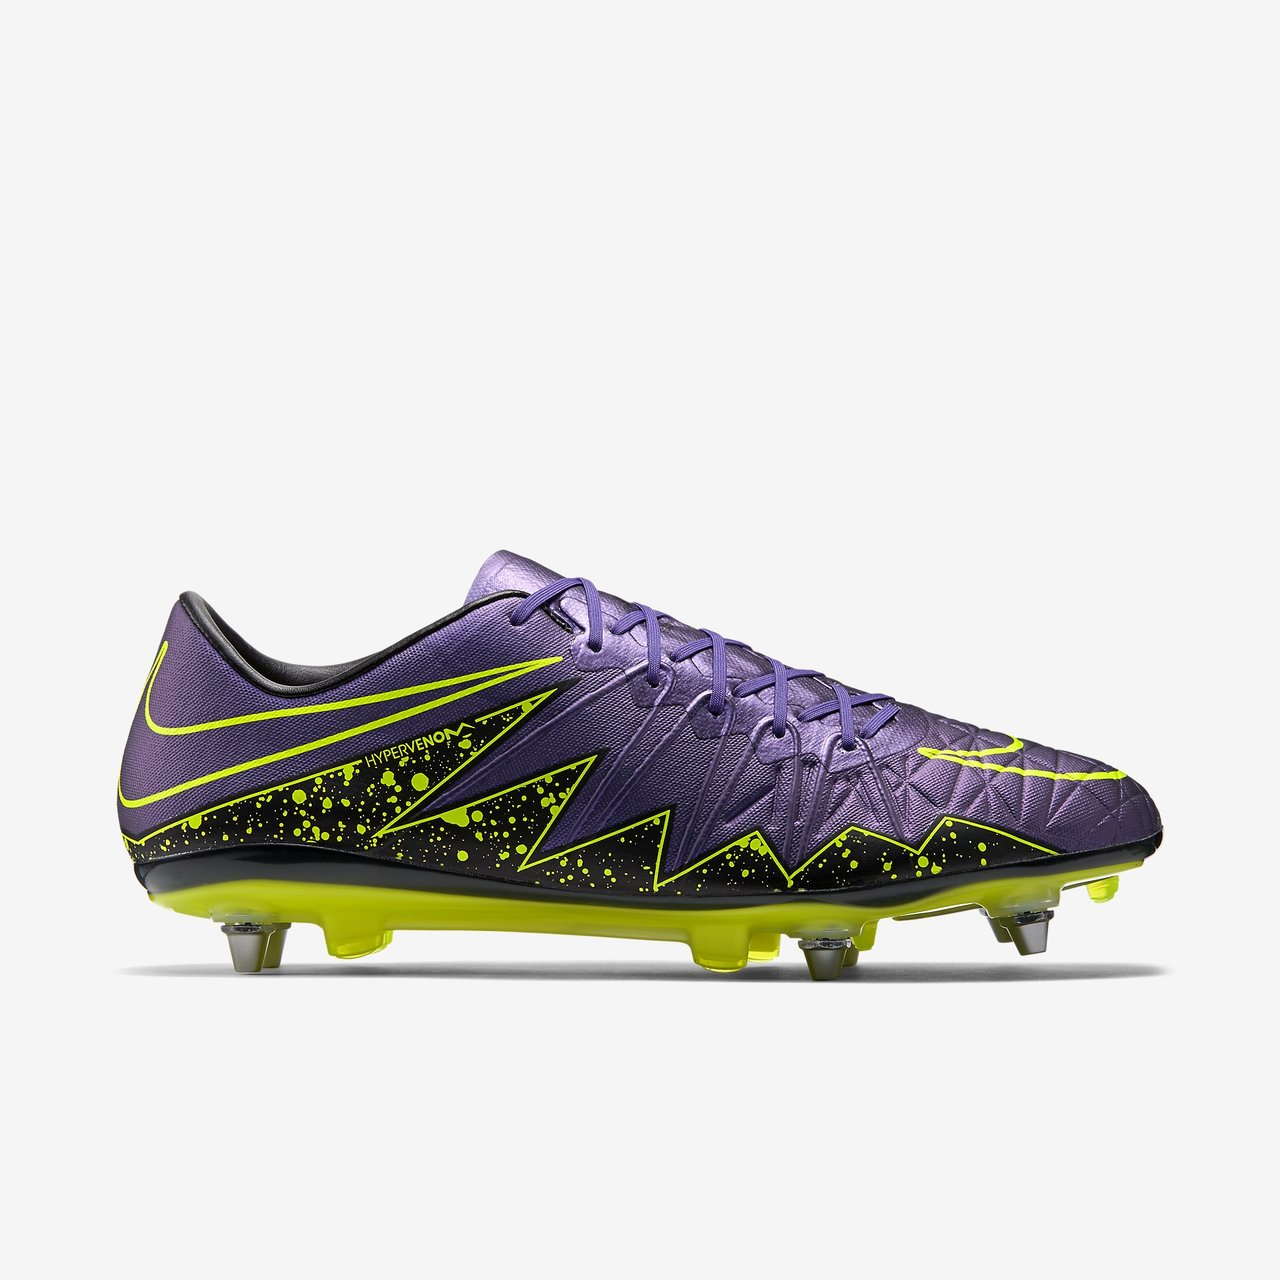 official photos f9300 ad5d5 ... top quality click to enlarge image nike hypervenom phinish ii sg pro  06c5d dc46d